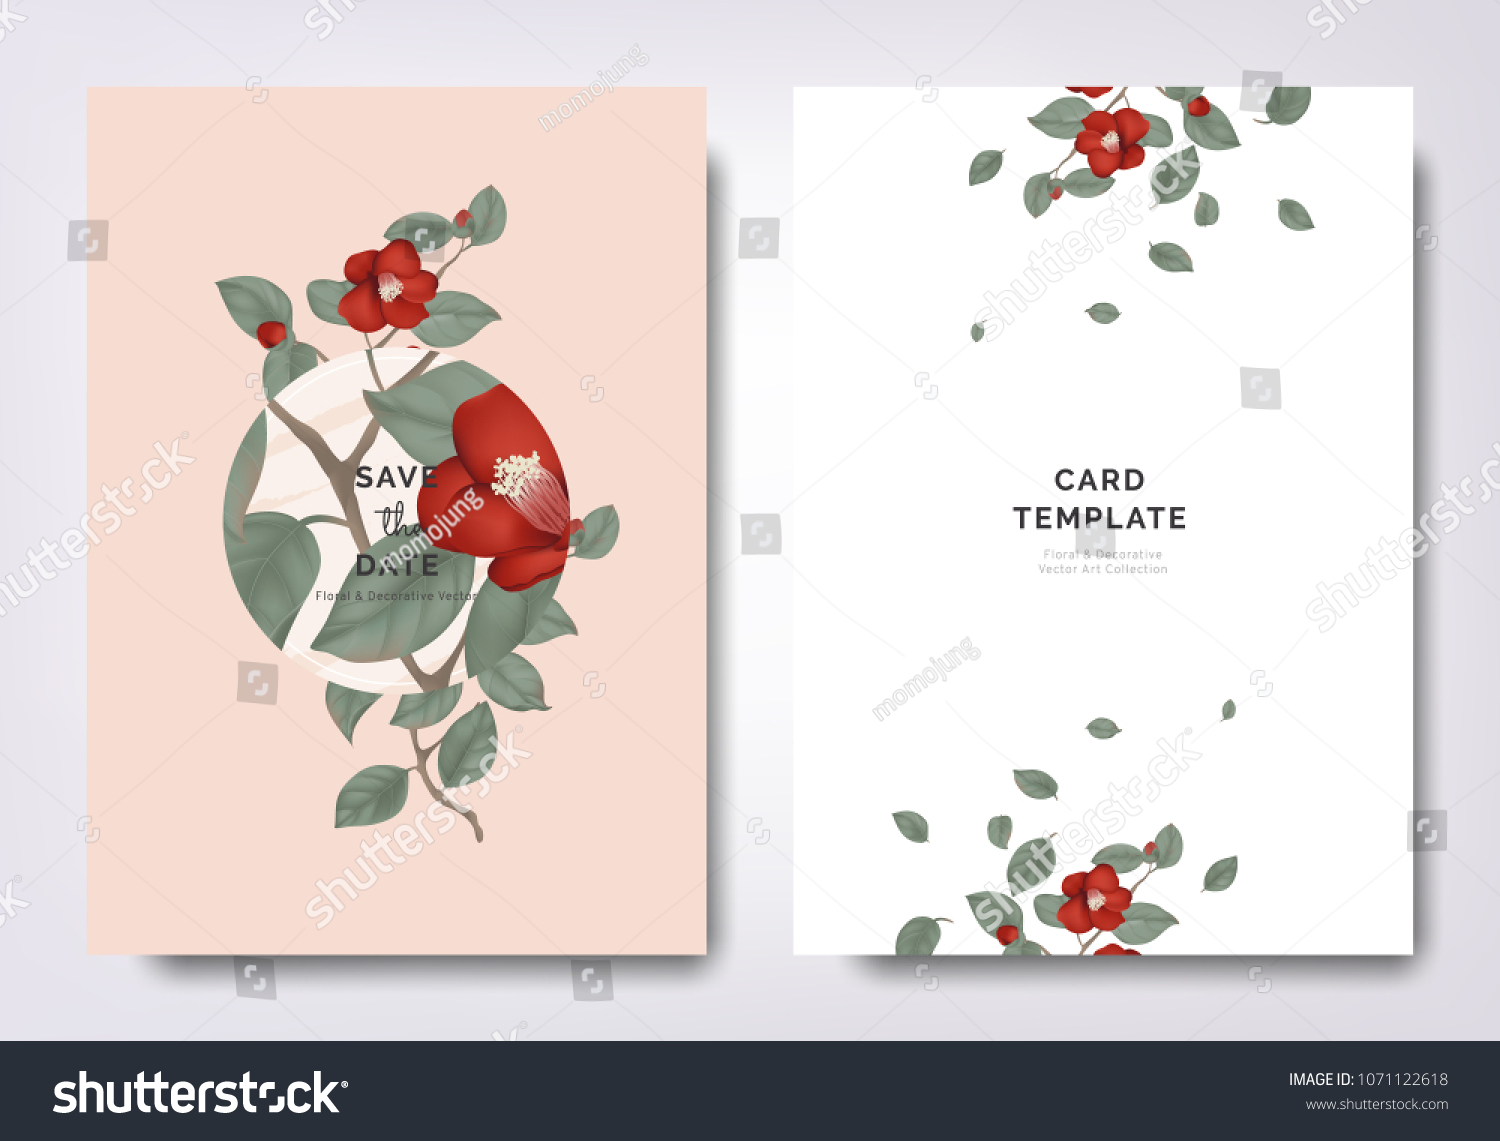 Botanical Wedding Invitation Card Template Design Stock Vector HD ...